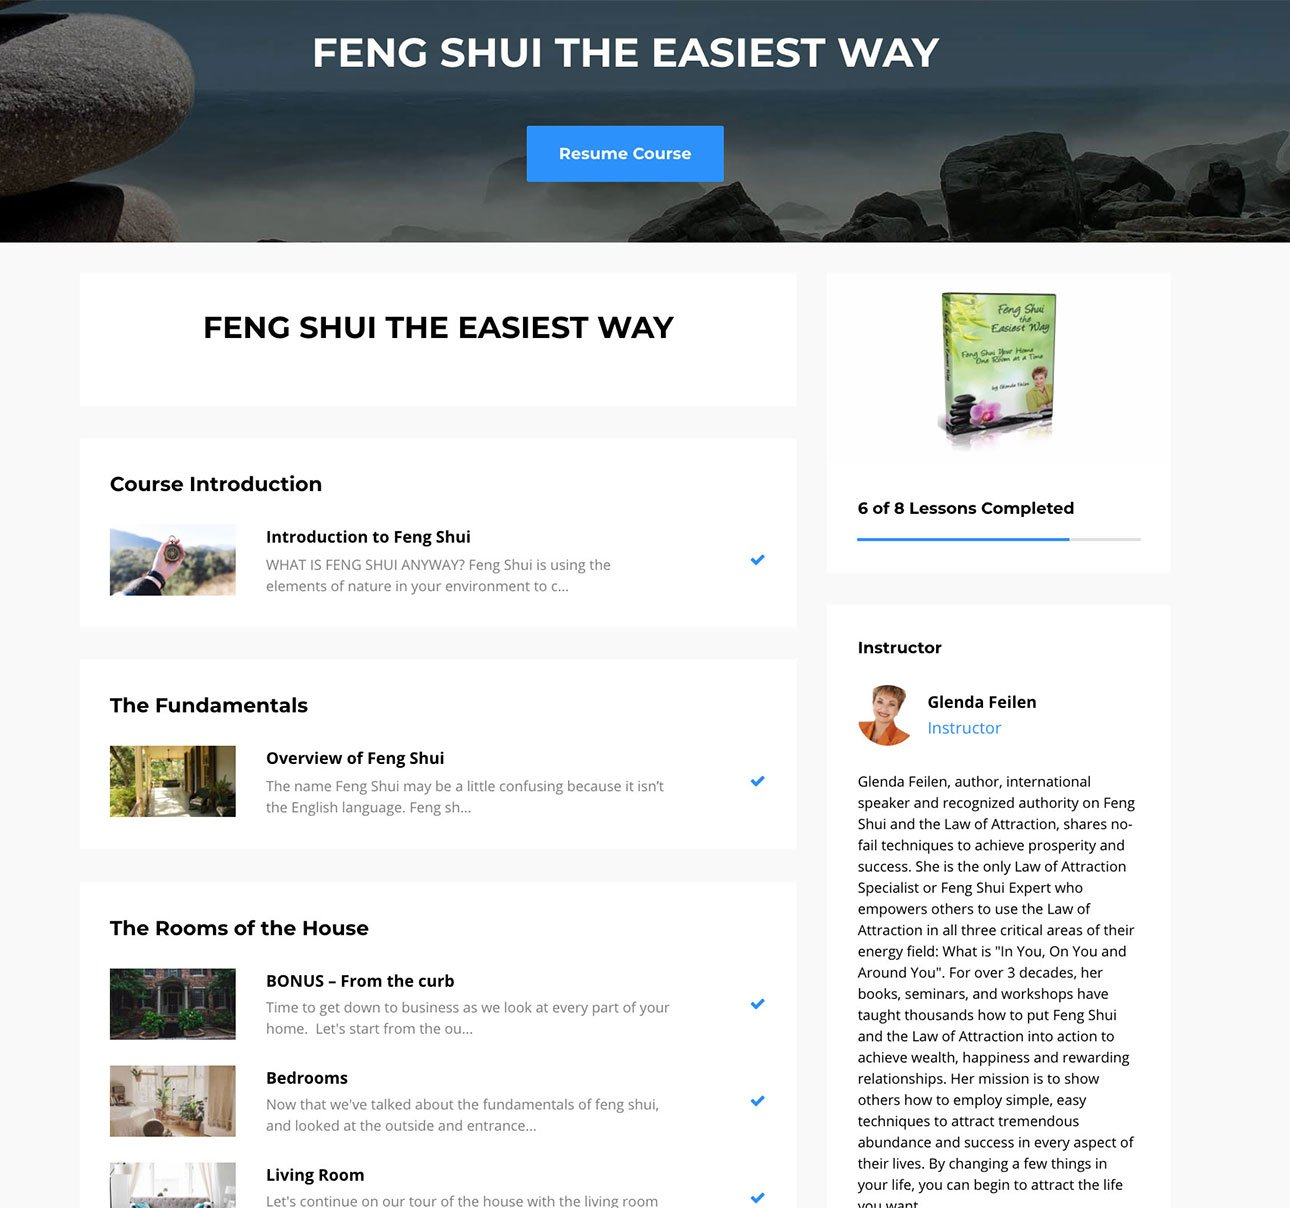 Feng Shui the Easiest Way